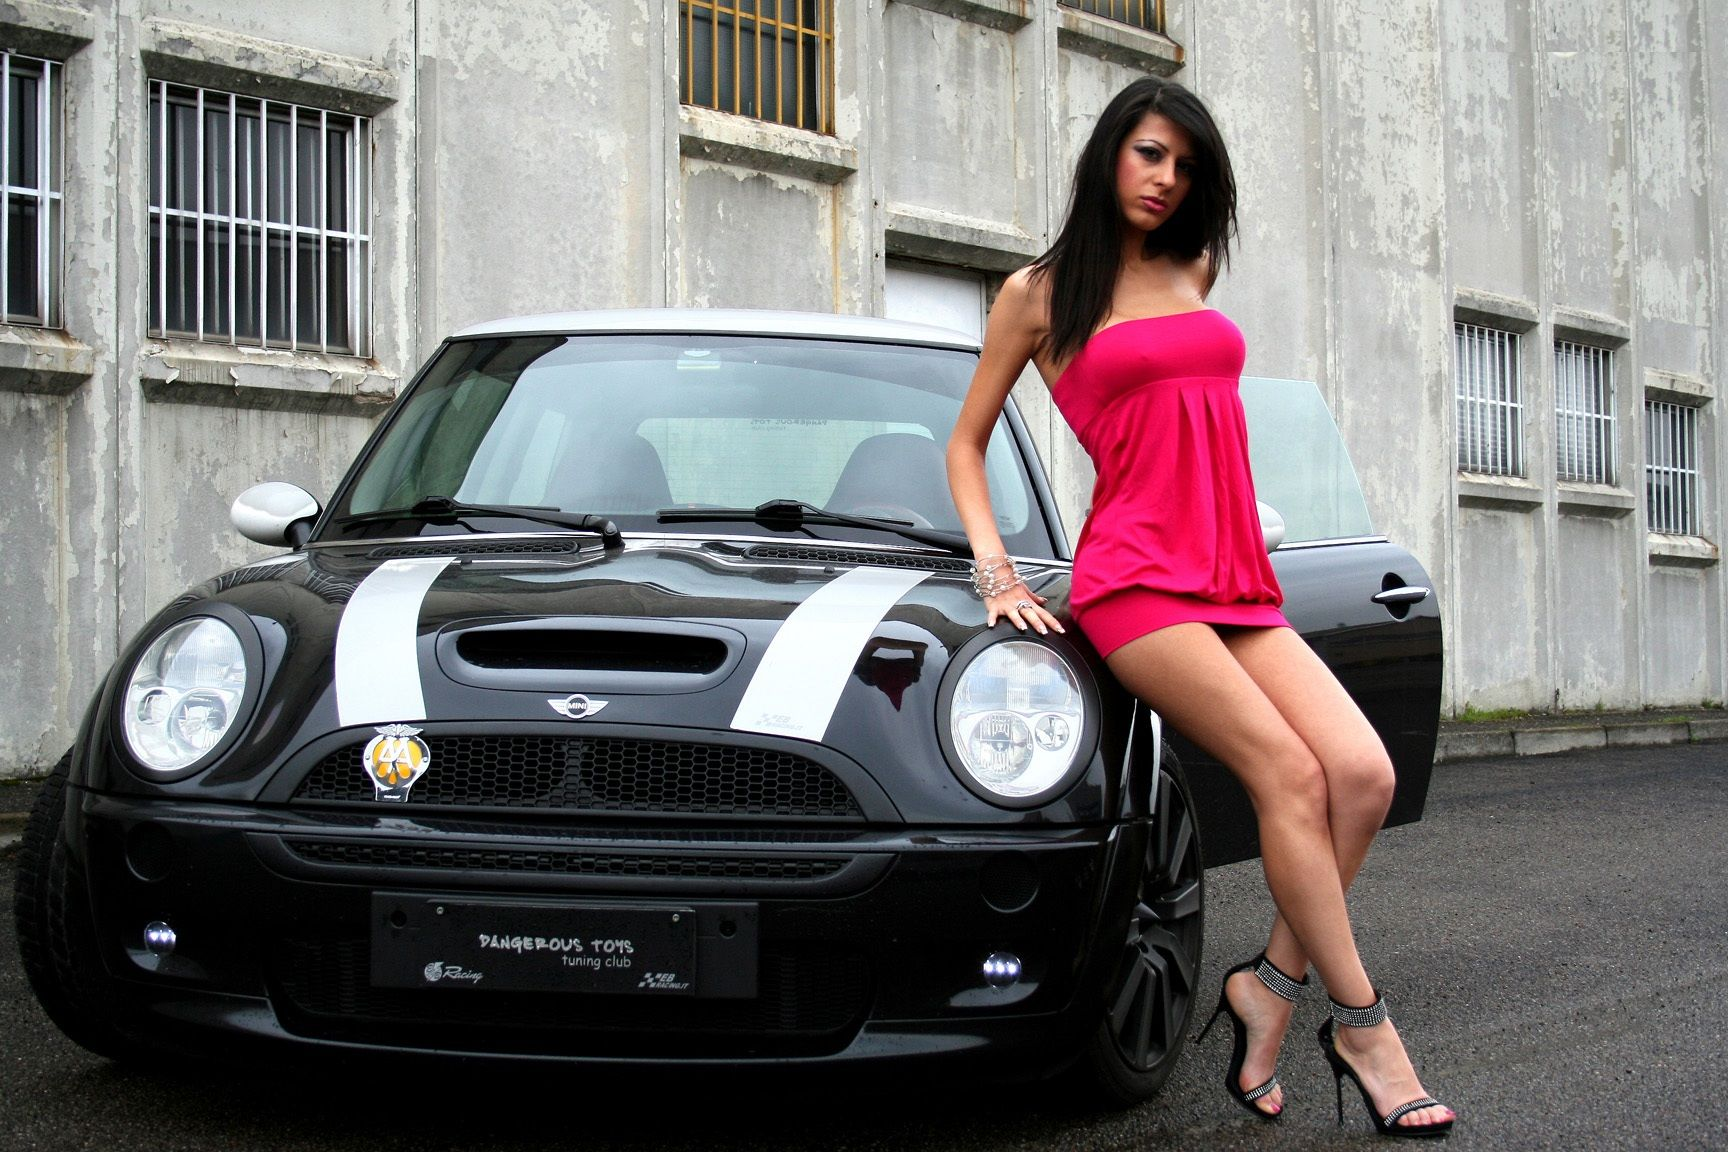 Having Sex In Fast Cars - Two things we enjoy the most: Hot cars & hot women. When we get both at the  same time, we are the luckiest men. Here we have the sexiest girls with cars .